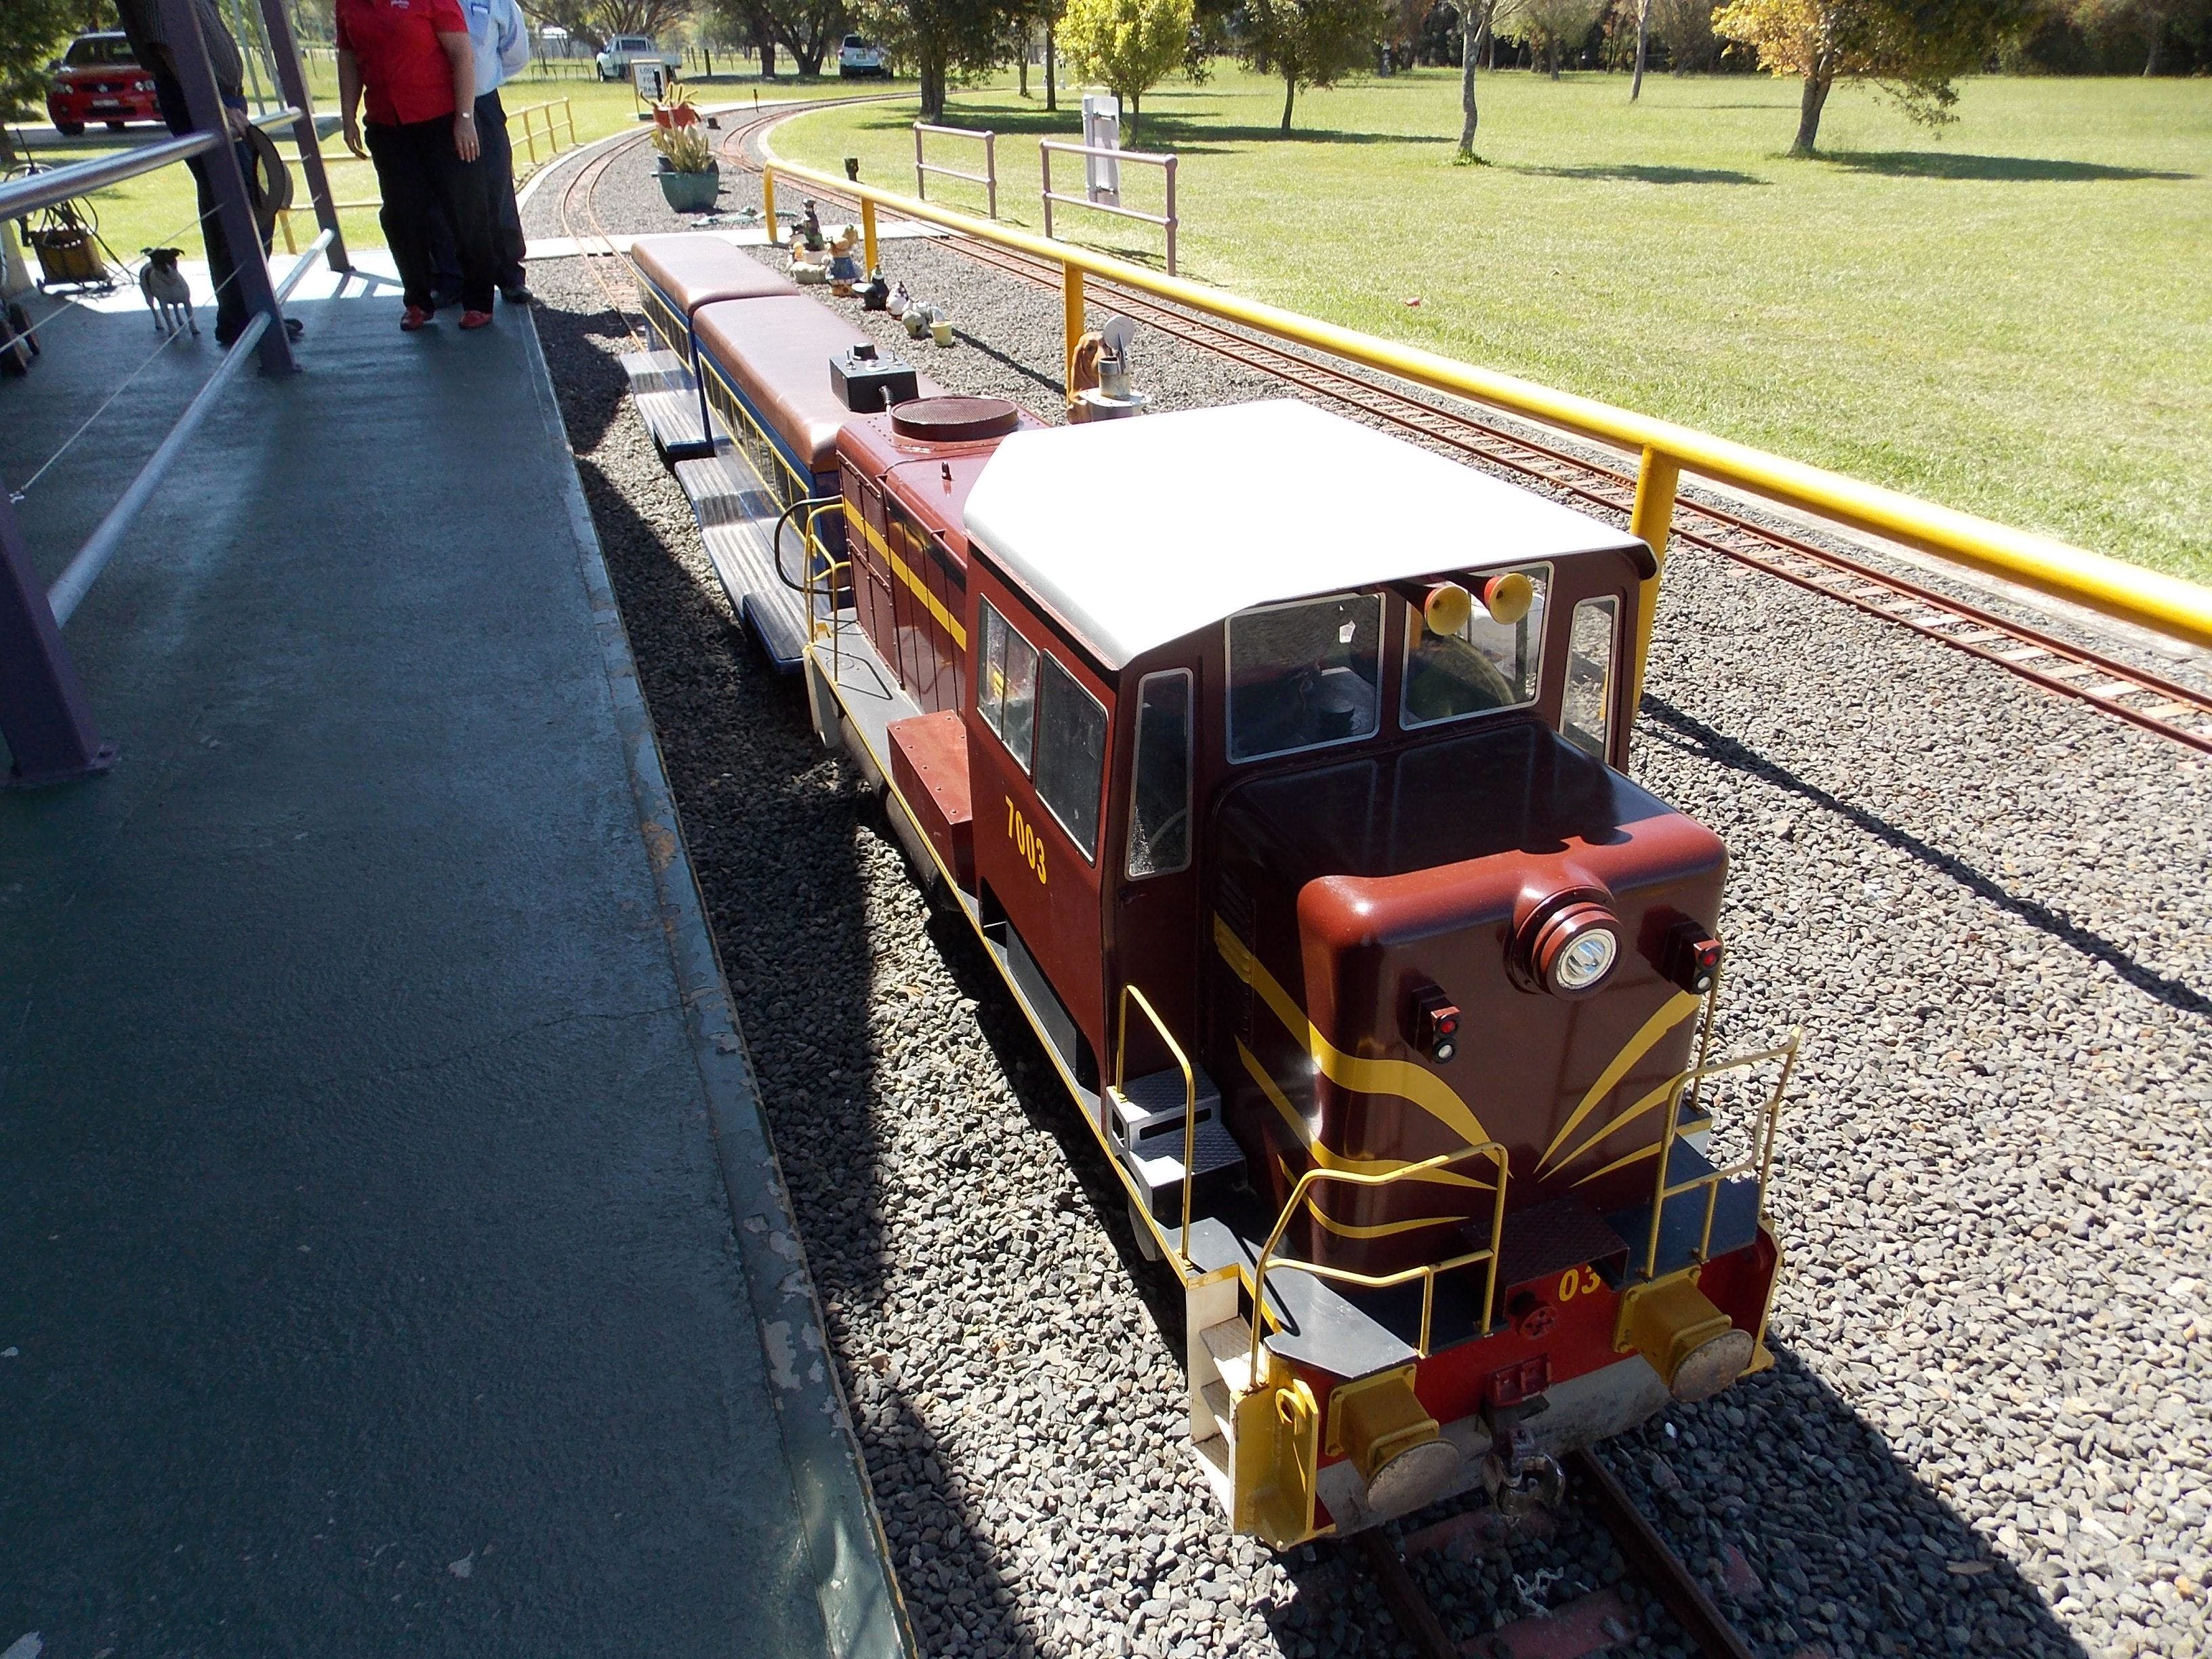 Penwood Miniature Railway - Accommodation Airlie Beach